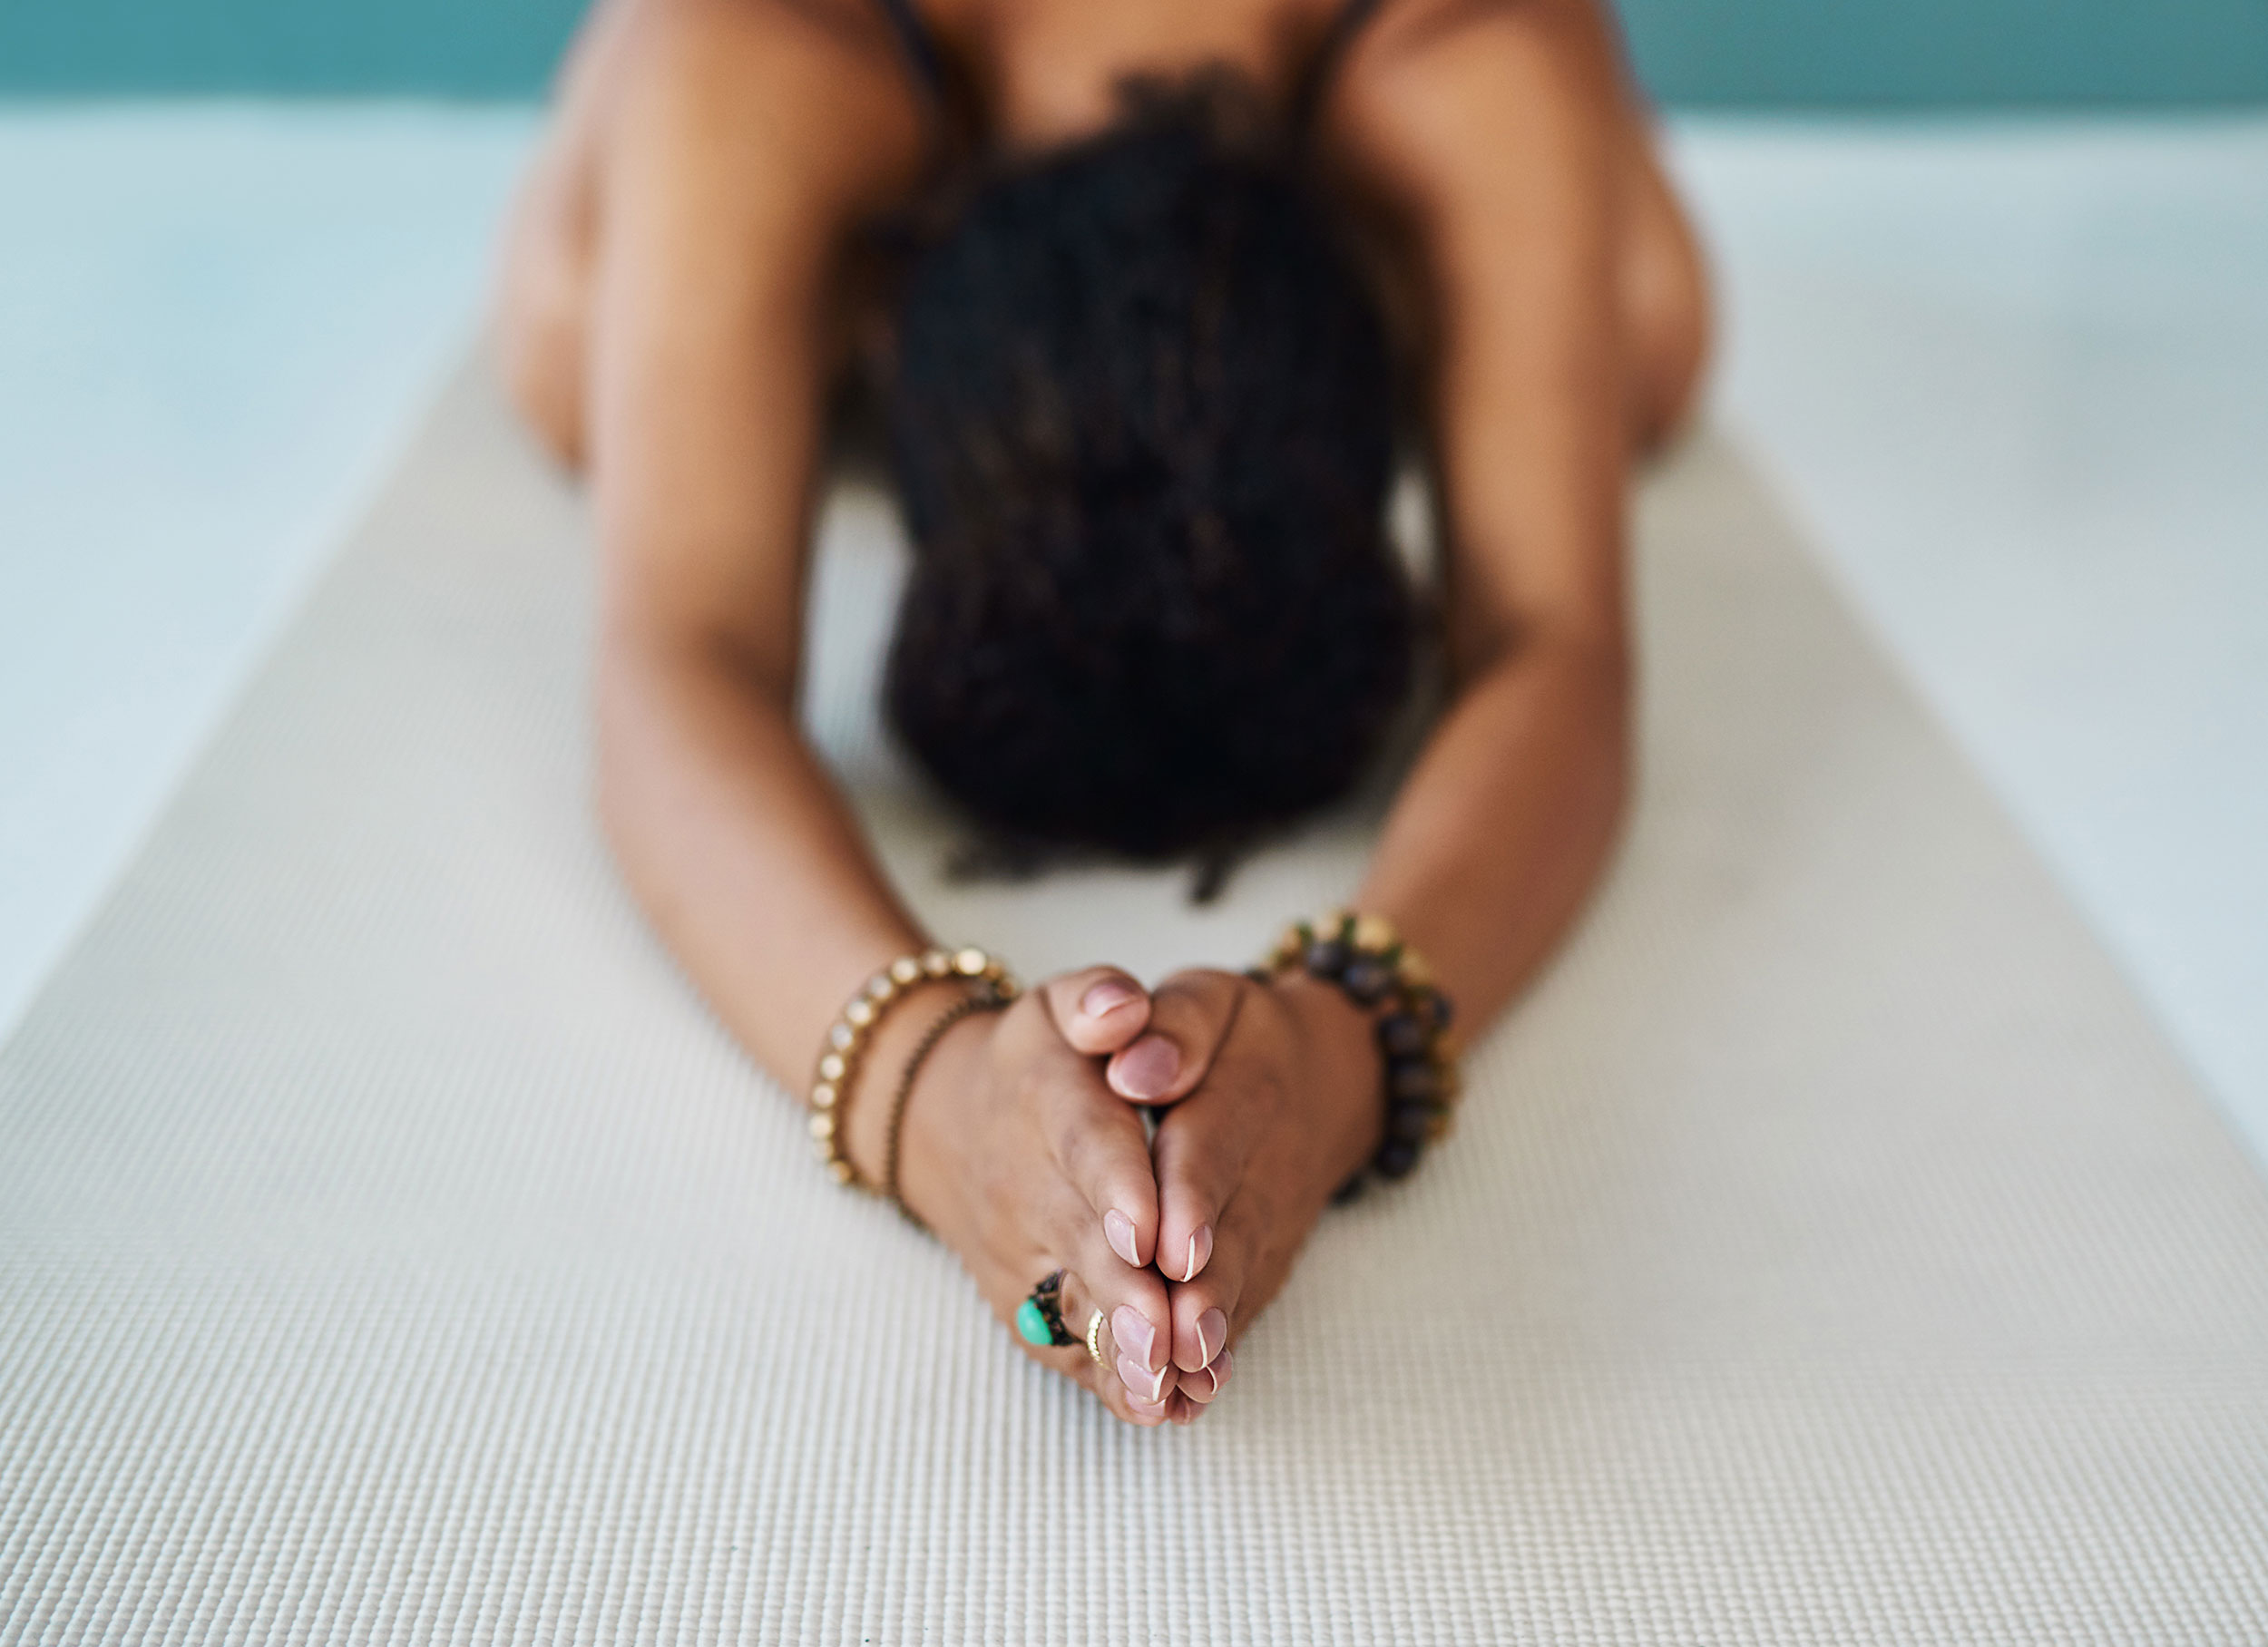 Woman practicing her yoga poses